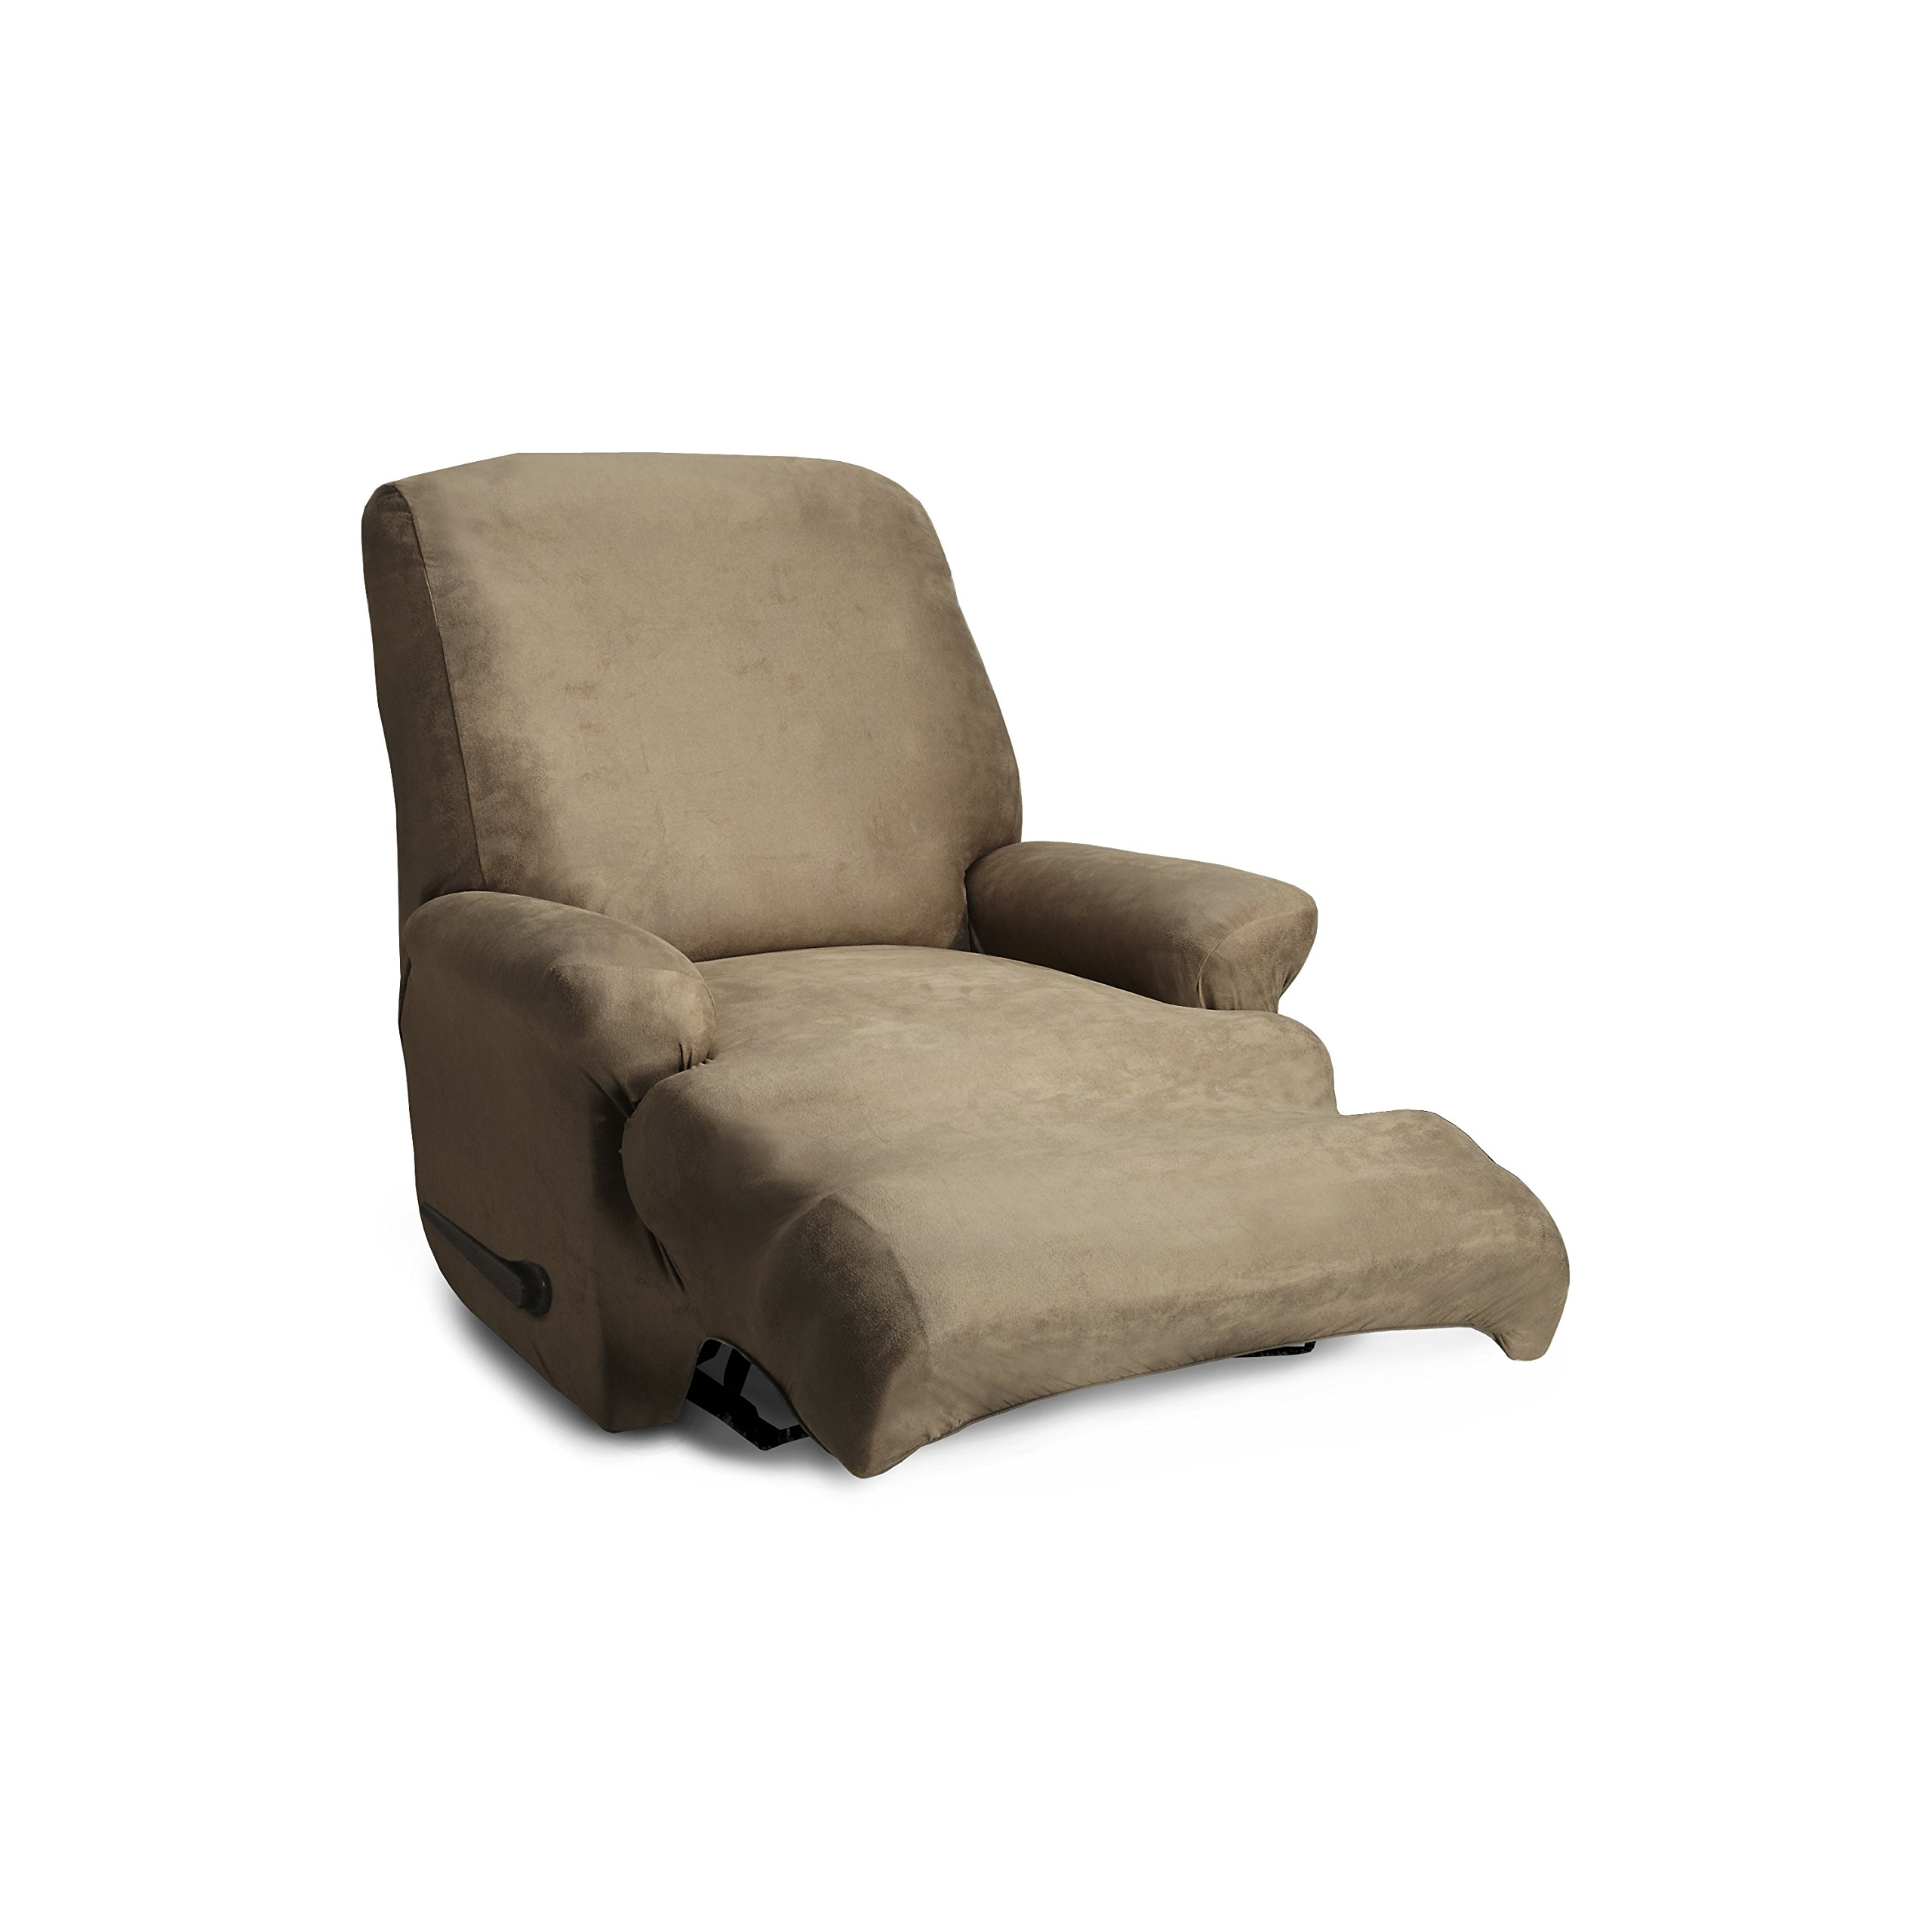 CoverWorks AUSTREC4BISC1 Stretch Leather Stretch Recliner Slipcover, Biscuit by CoverWorks